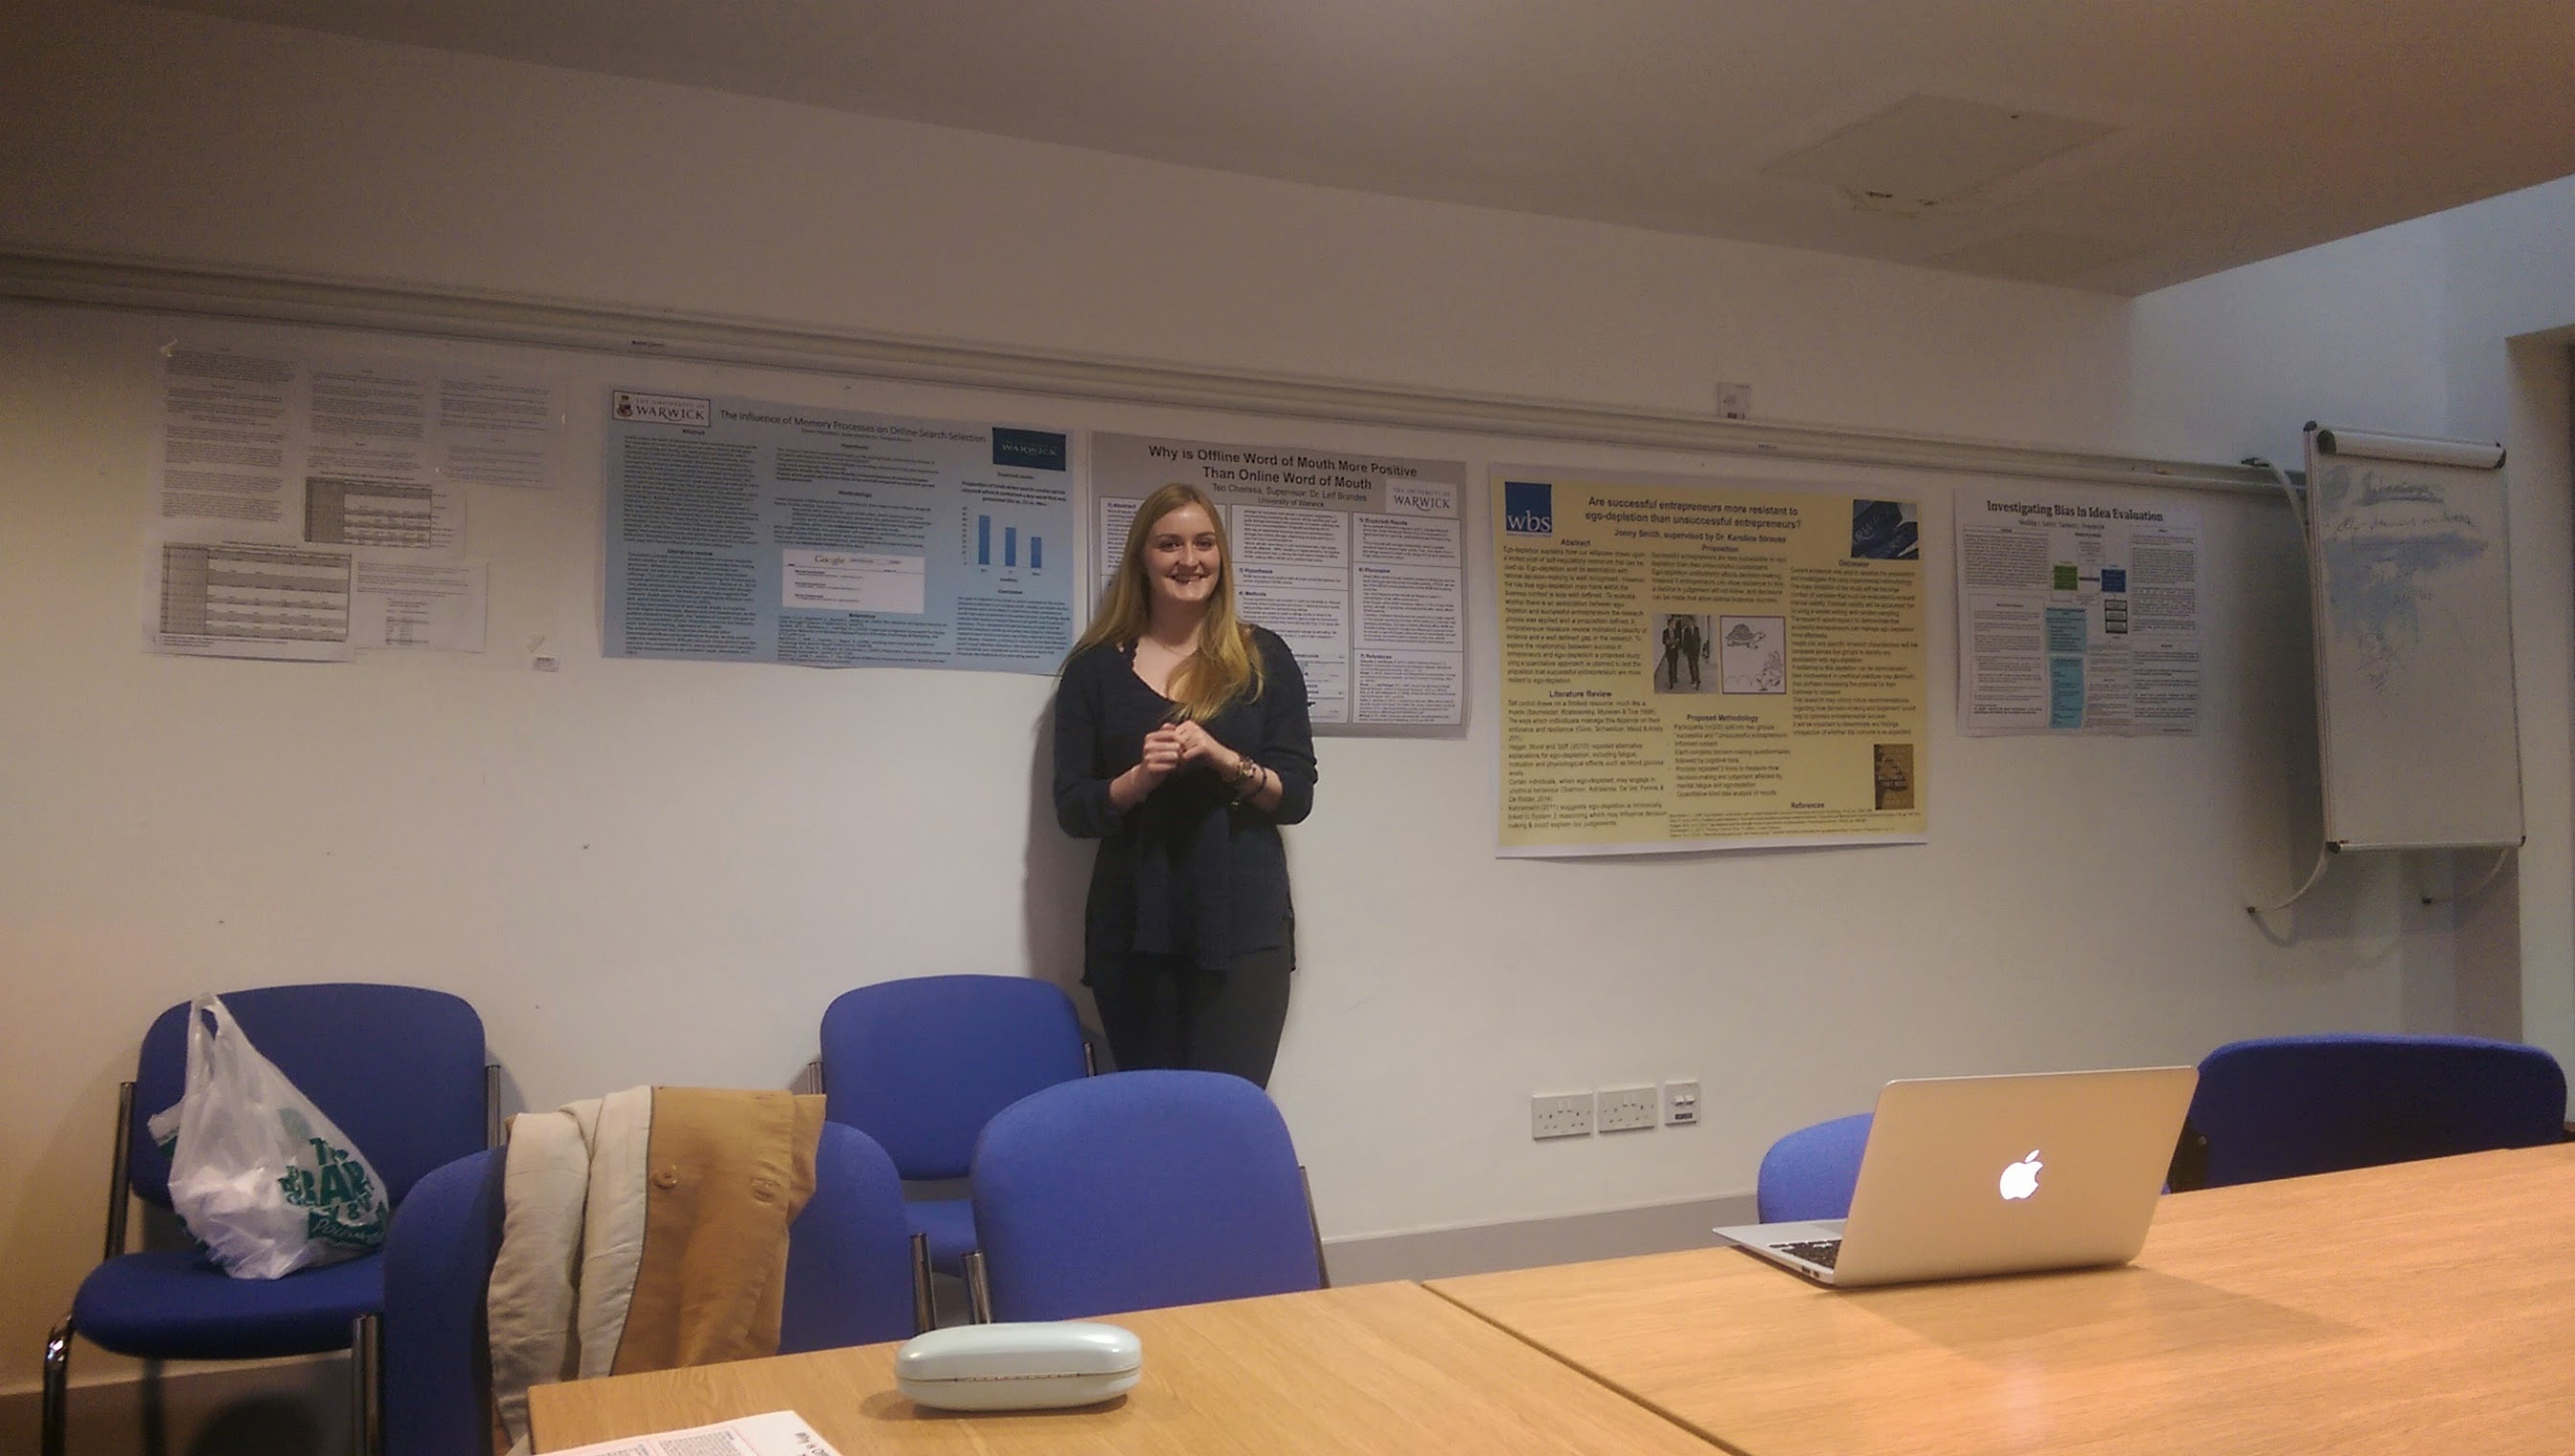 Undergraduate researcher with poster